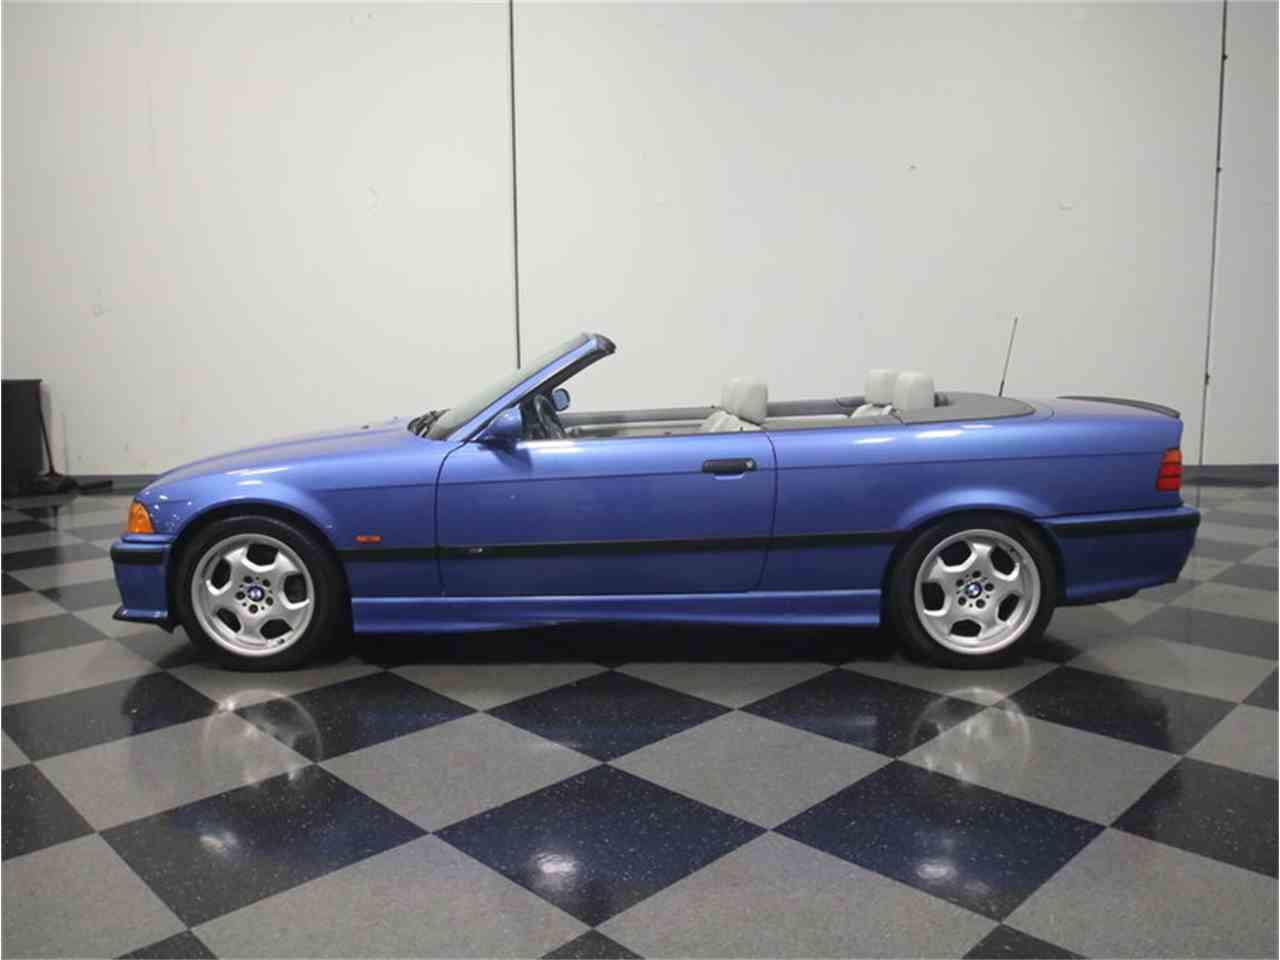 Large Picture of '98 BMW M3 located in Lithia Springs Georgia - $11,995.00 - LVN8